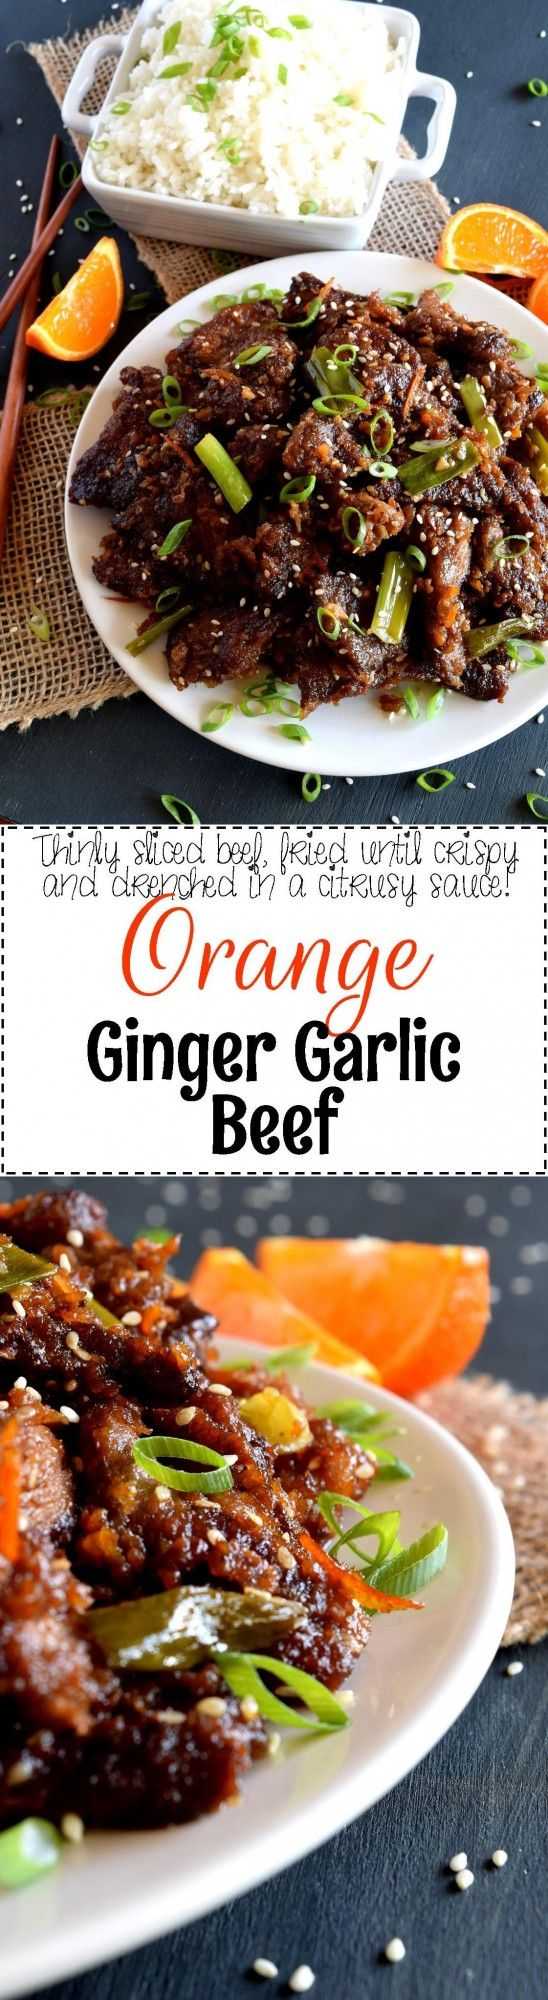 Thinly sliced beef which has been lightly seared and tossed in a thick orange-based sauce.  Orange Ginger Garlic Beef is a quick take-out inspired dish which packs a punch of flavour while using just a few fresh ingredients.   I wish…